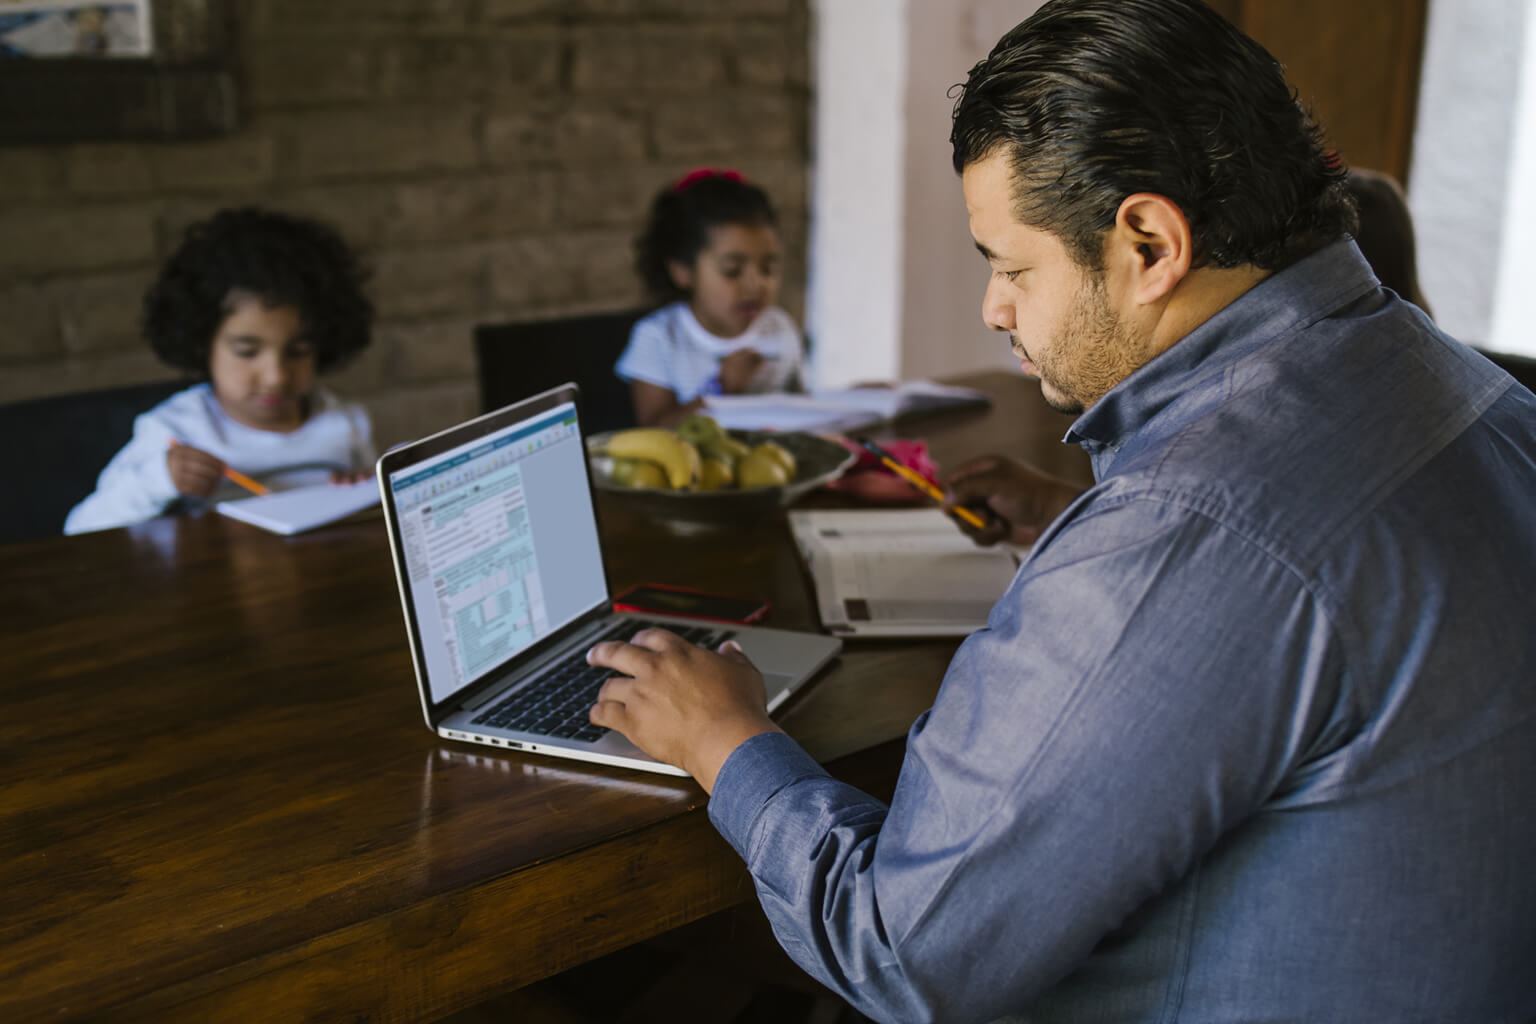 Man working from home surrounded by children